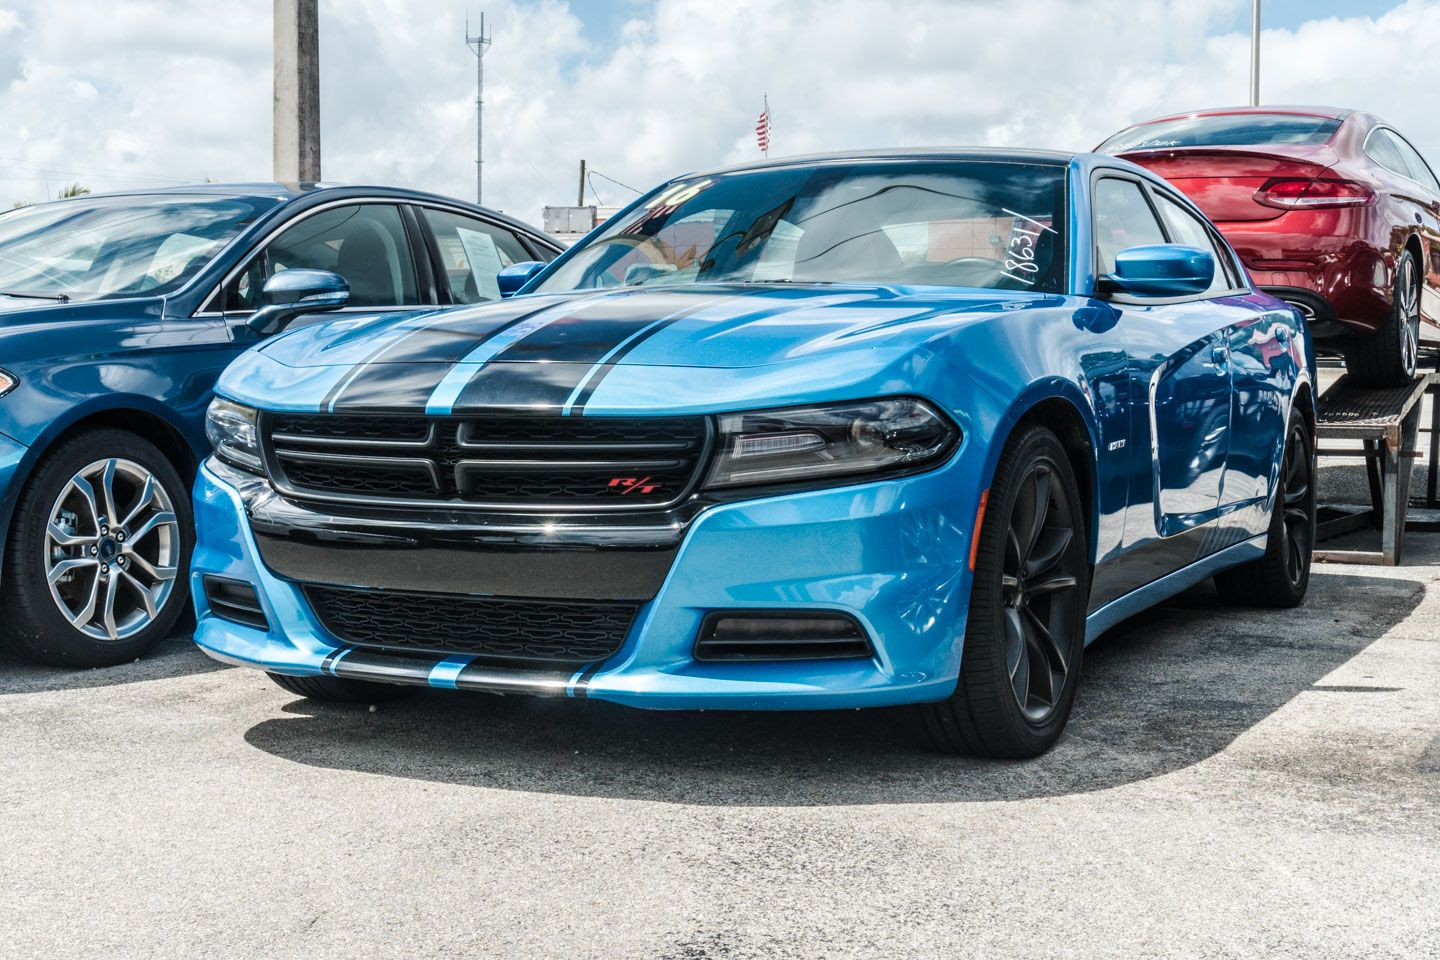 Pin By Amanda Schonborn On Dodge Chargers With Images Charger Rt Dodge Charger Rt Dodge Charger